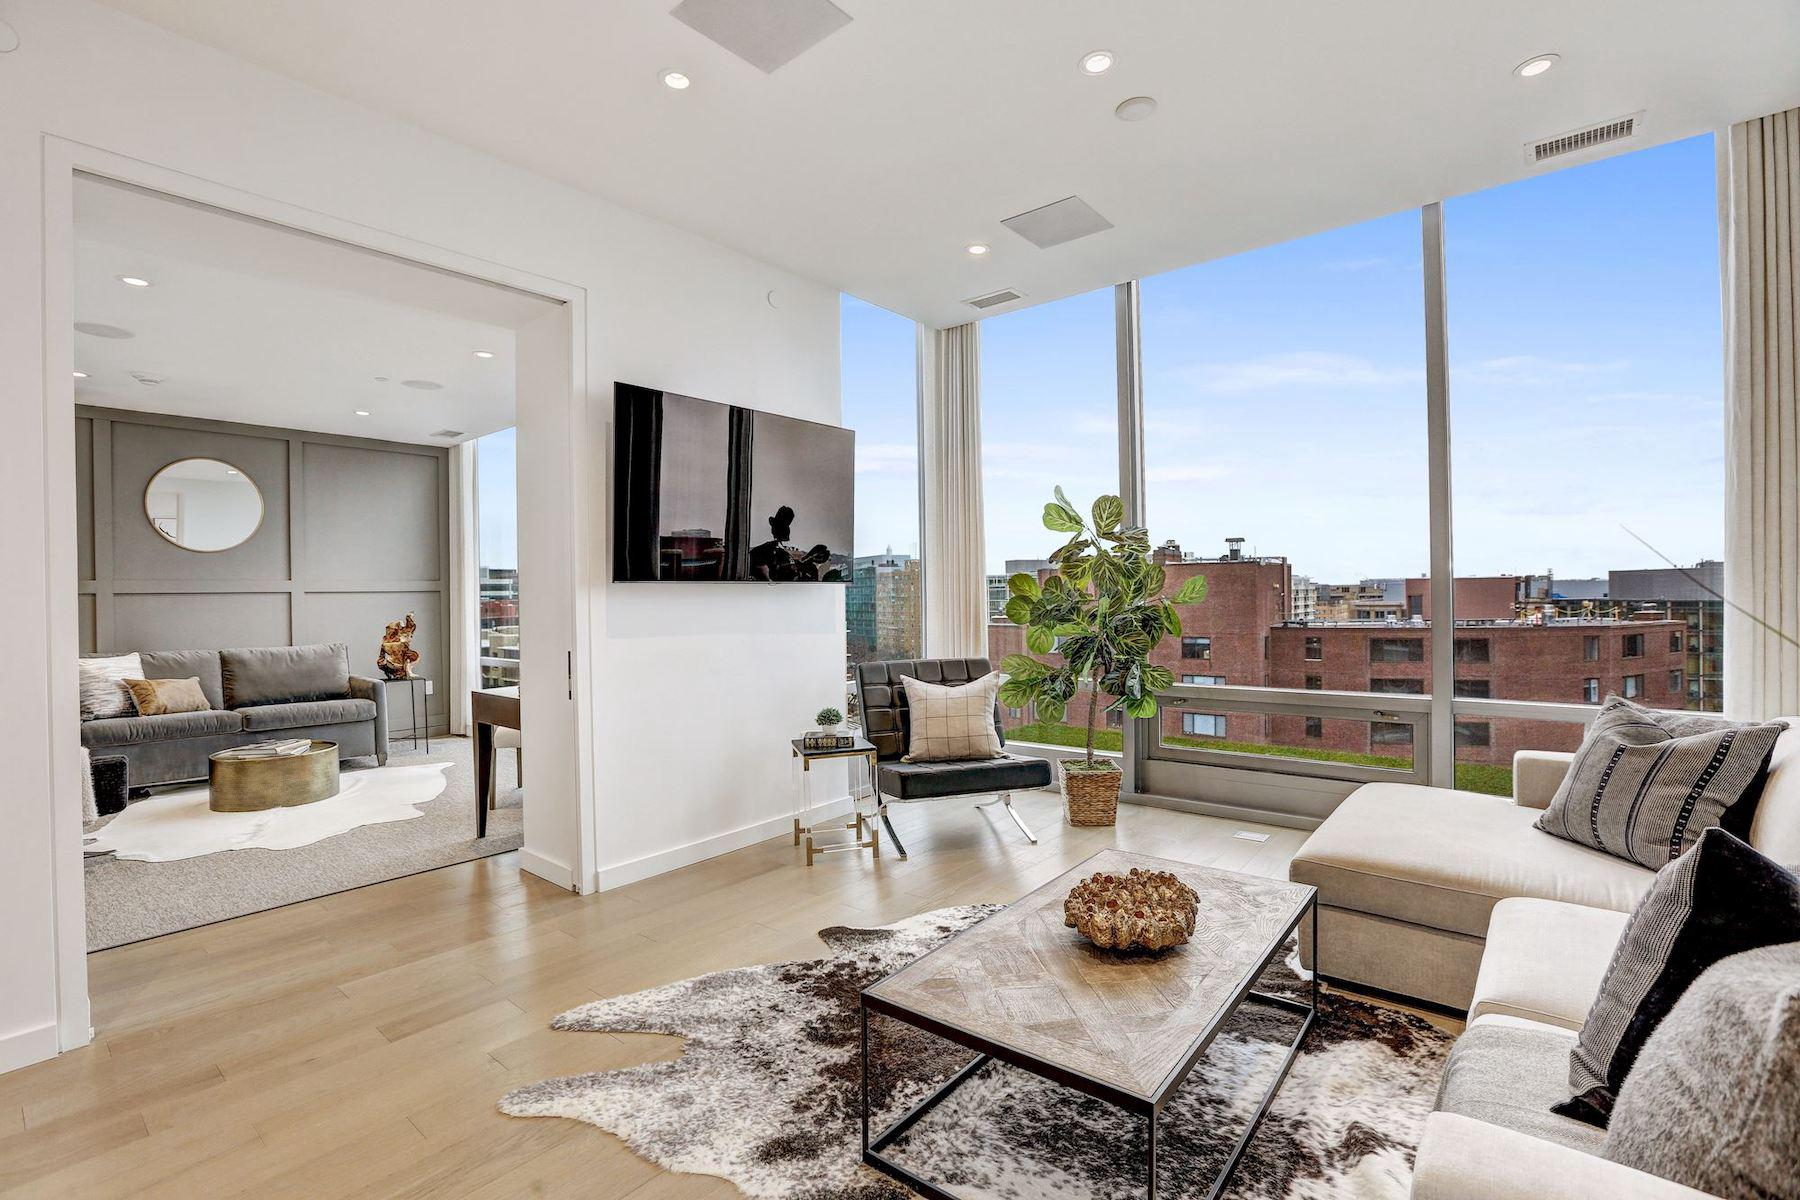 Condominium for Sale at 1111 24th NW #ph105 Washington, District Of Columbia 20037 United States